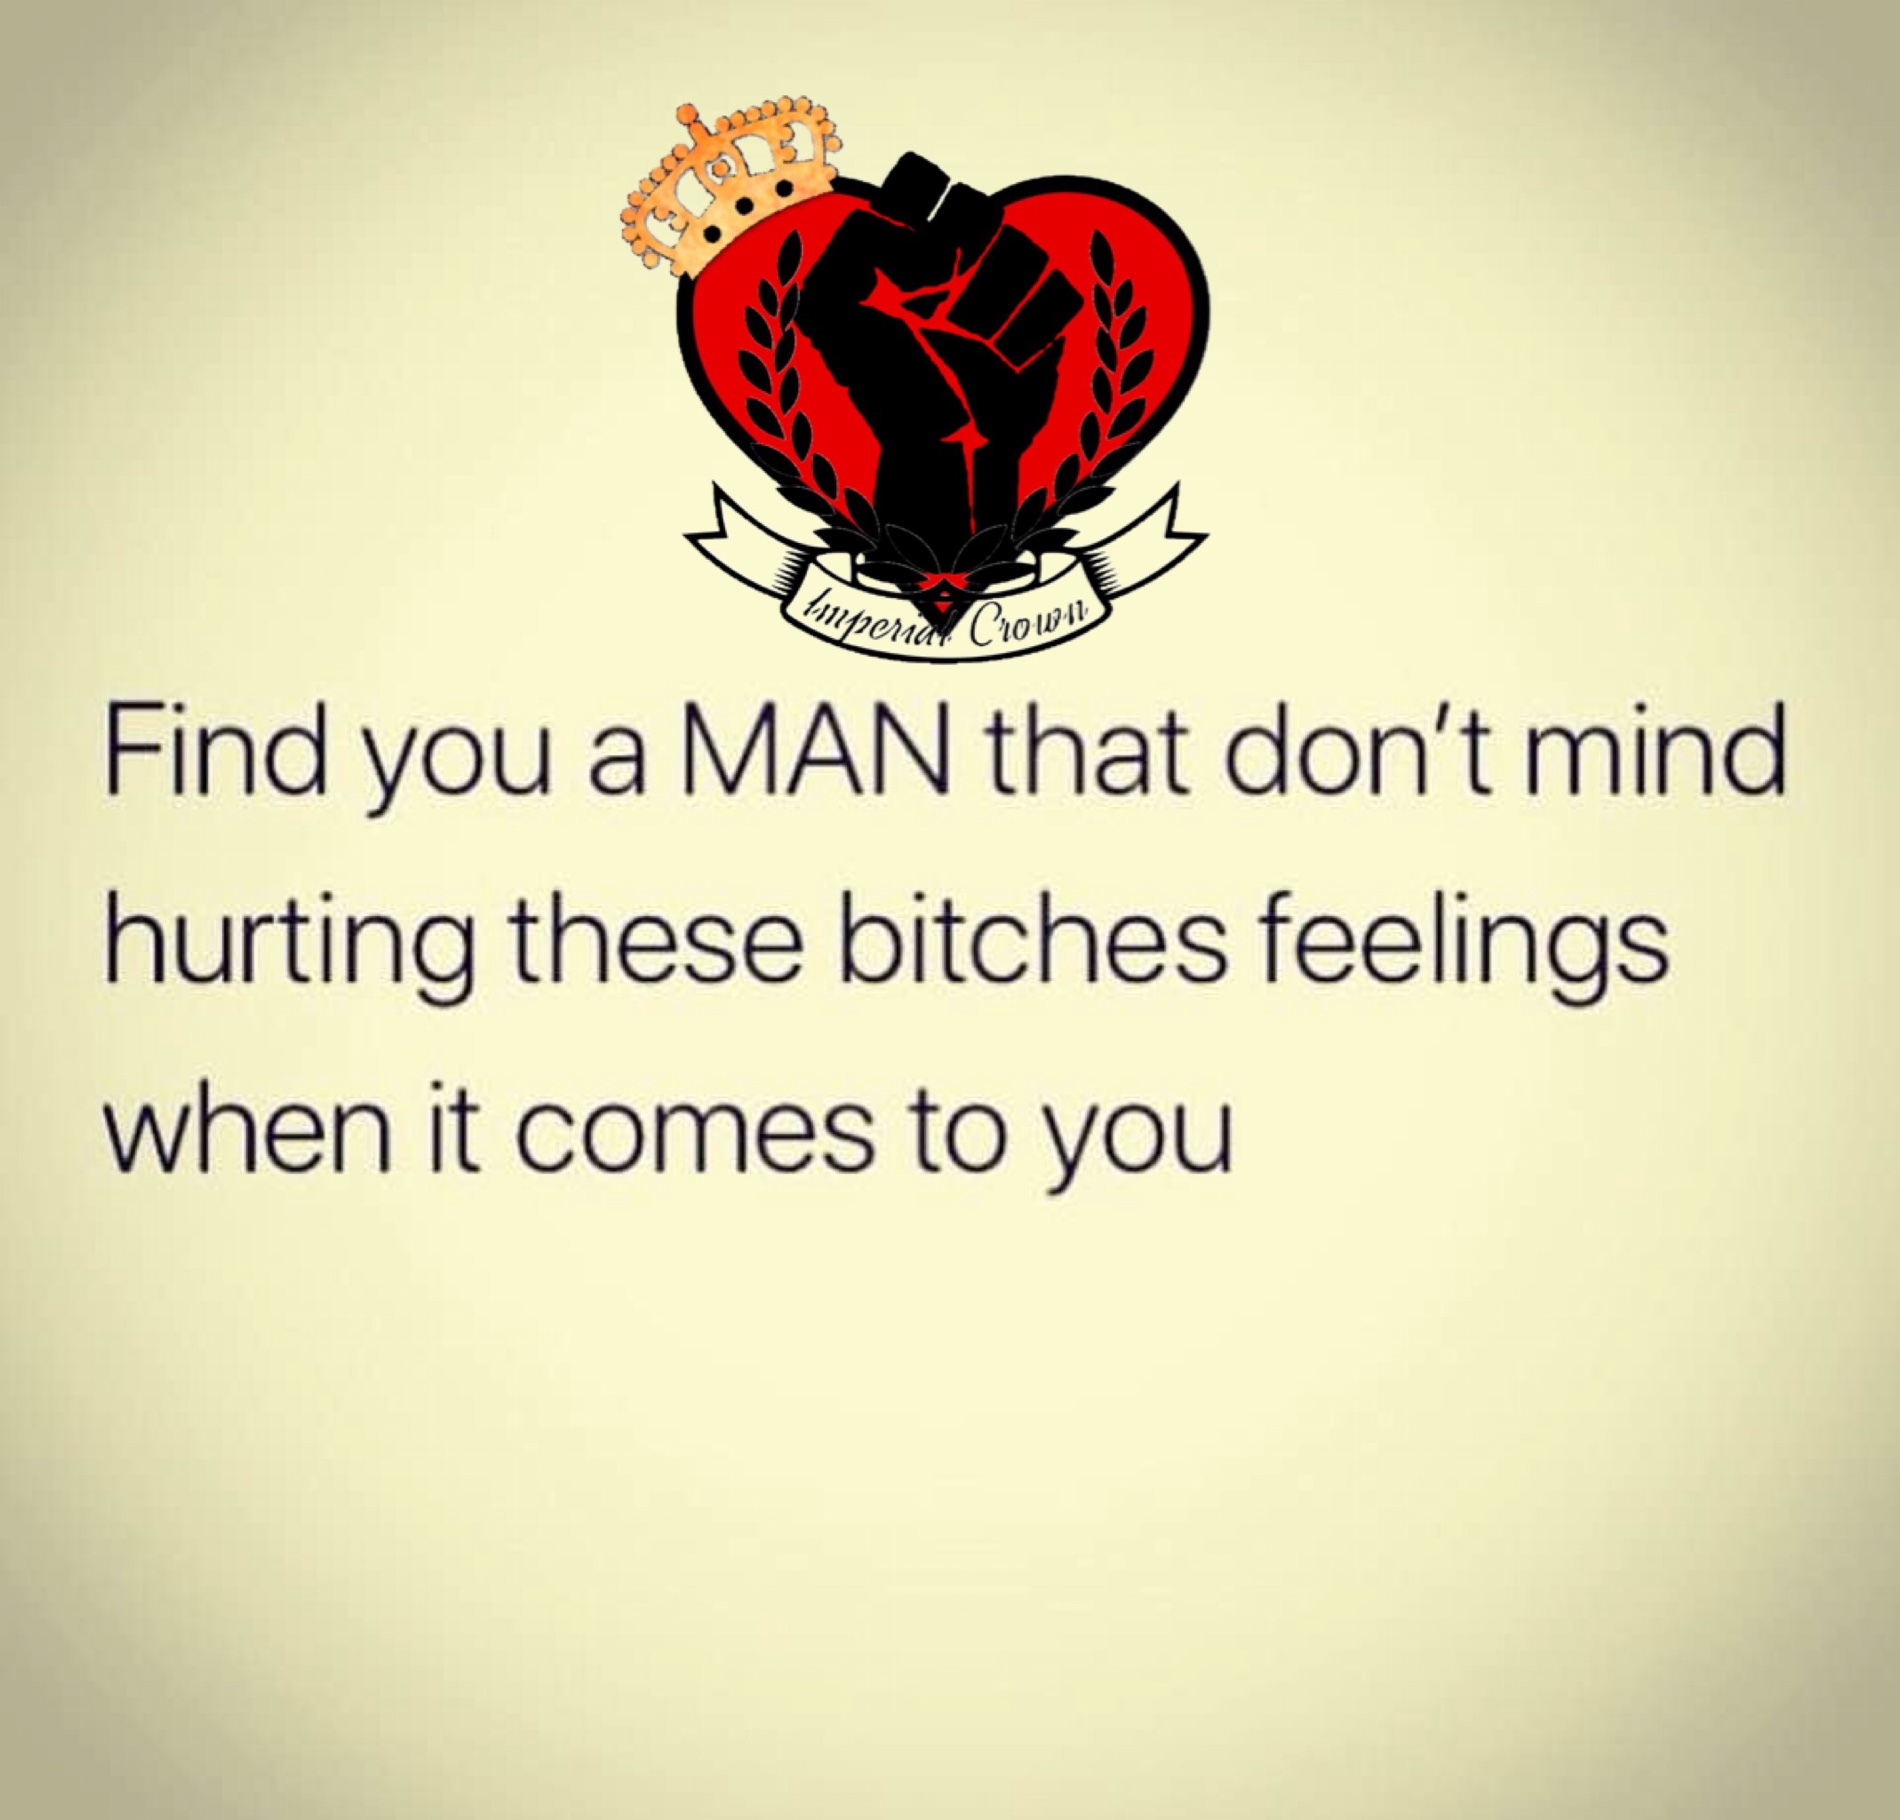 Find you a man that don't mind hurting…